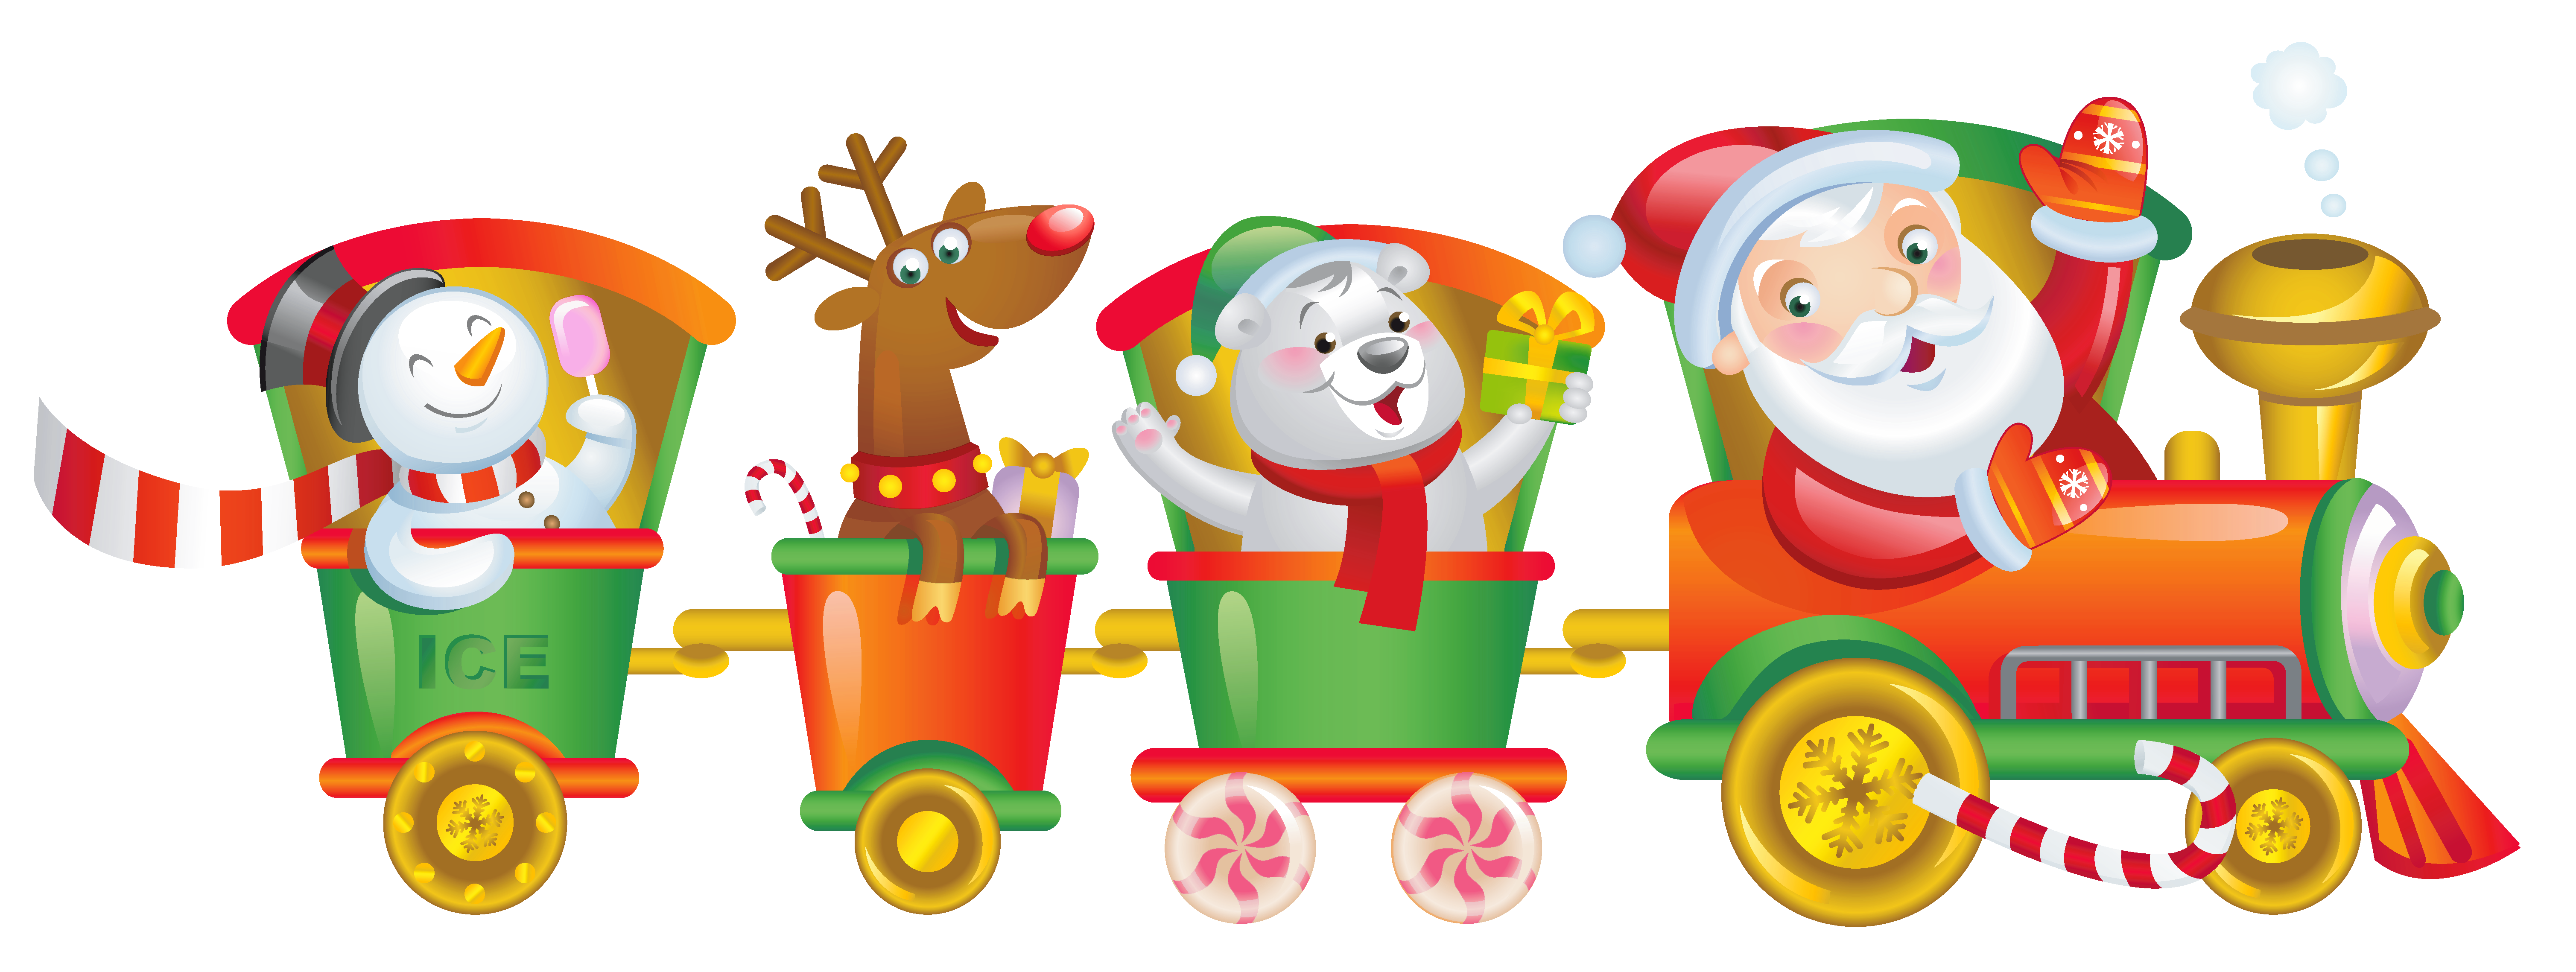 Christmas clipart for kids graphic black and white stock Transparent Christmas Santa Train PNG Clipart | Gallery ... graphic black and white stock